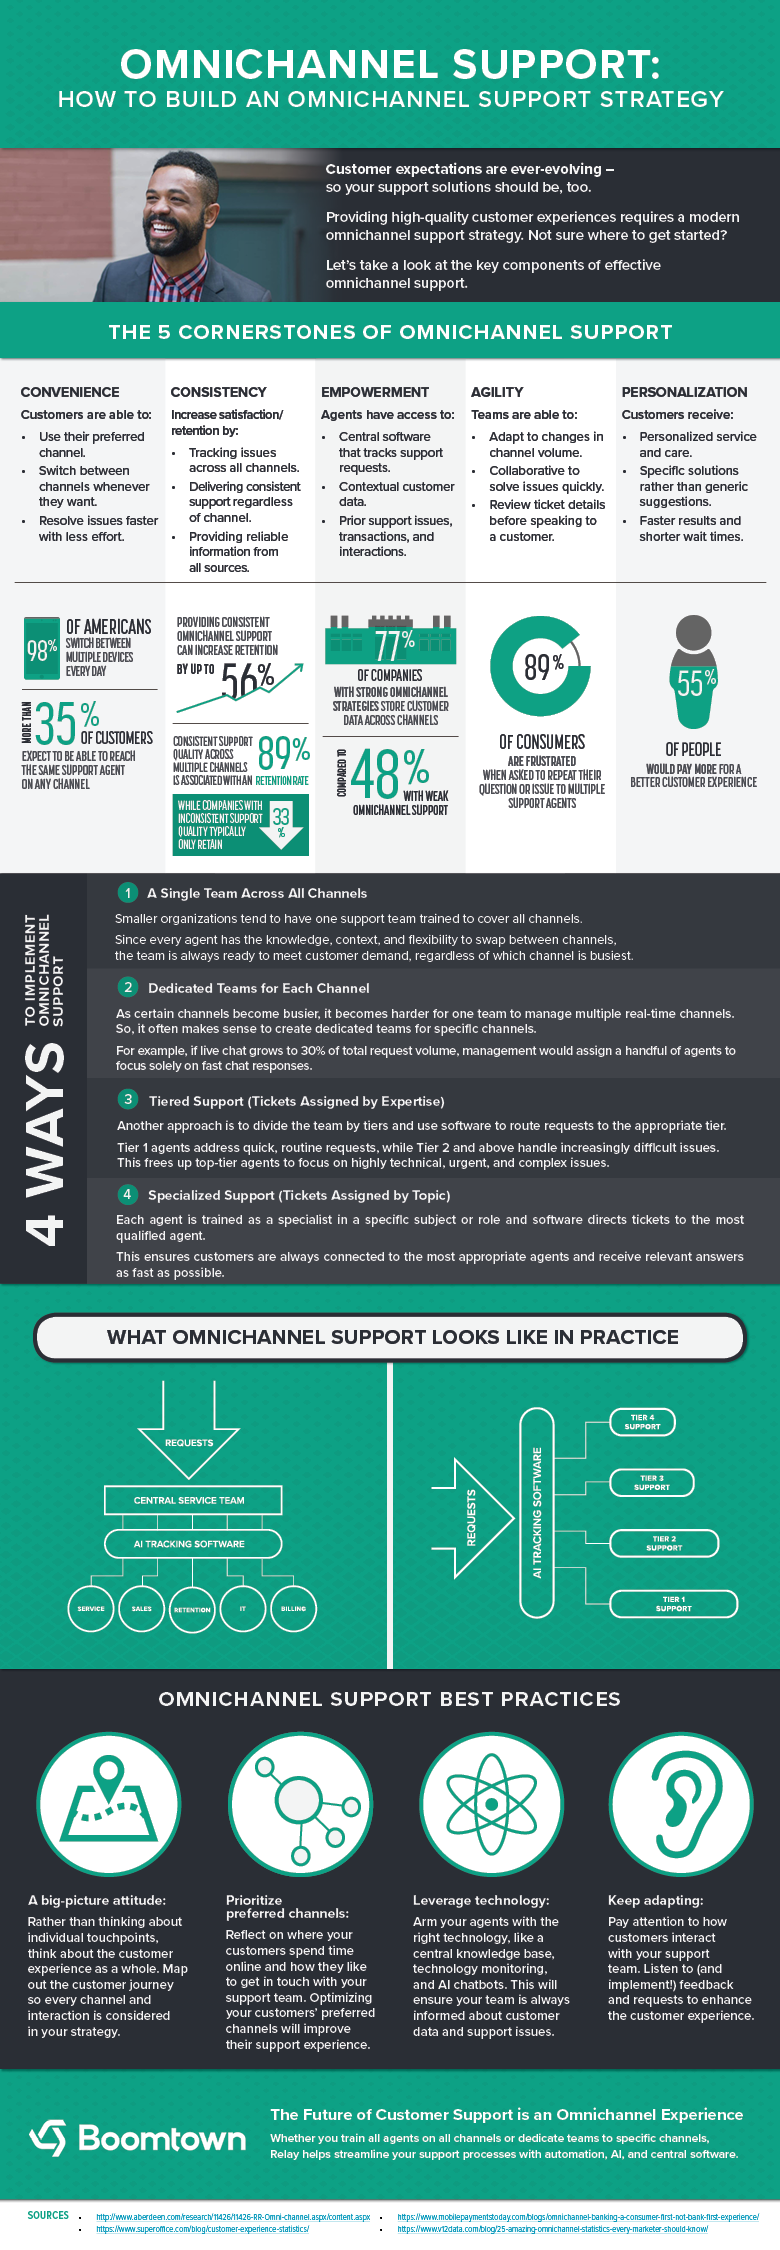 How to Build an Omnichannel Support Strategy #infographic